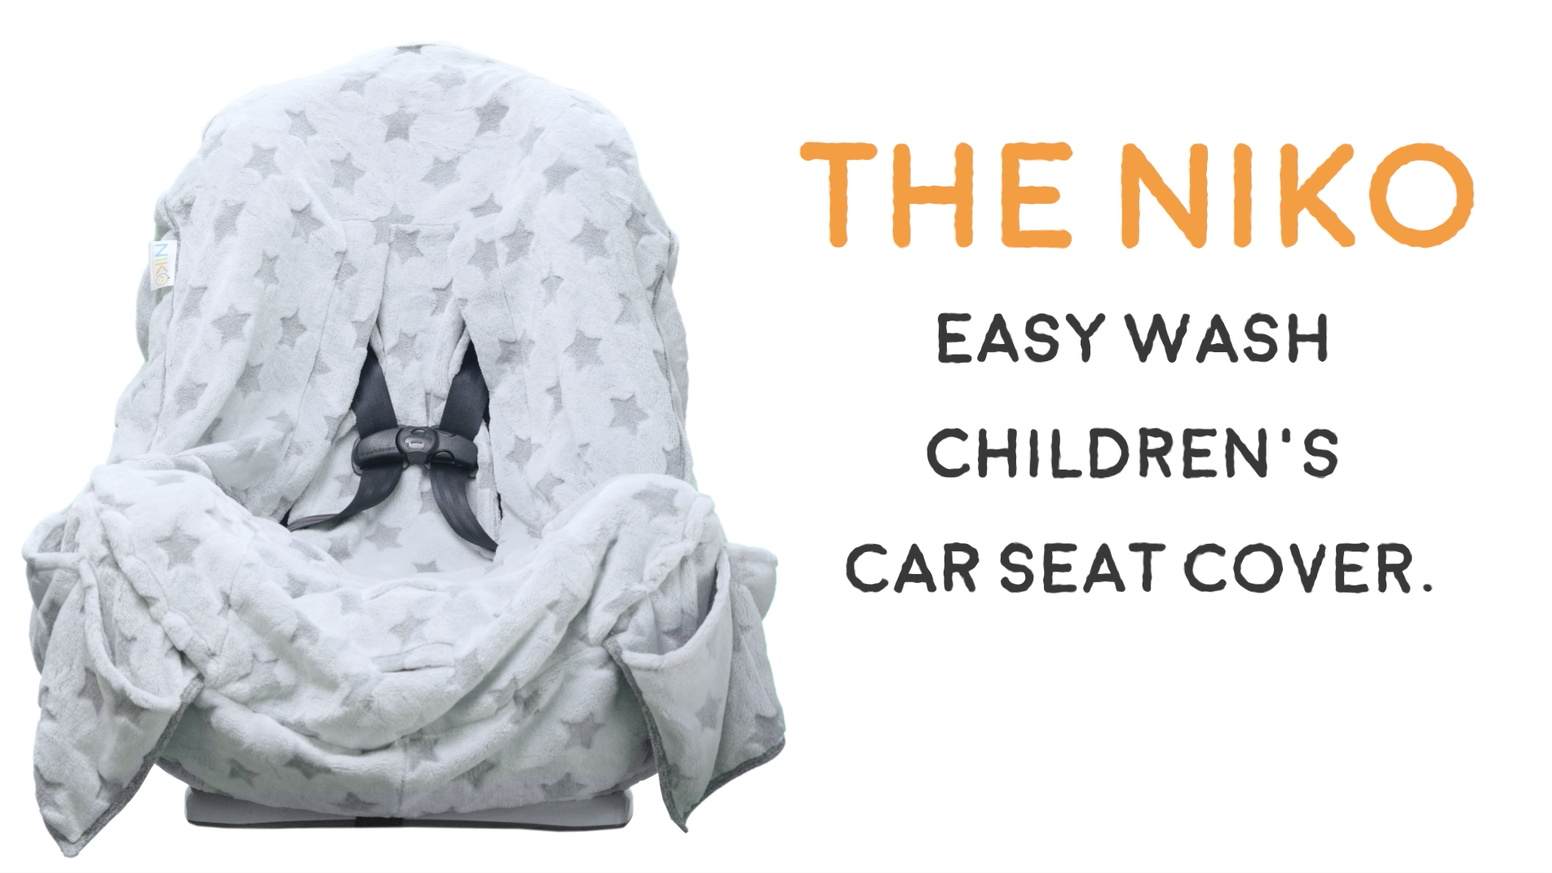 Barf, poo, pee, food, mud and mold. They create a germ-fest in our kids' car seats.  